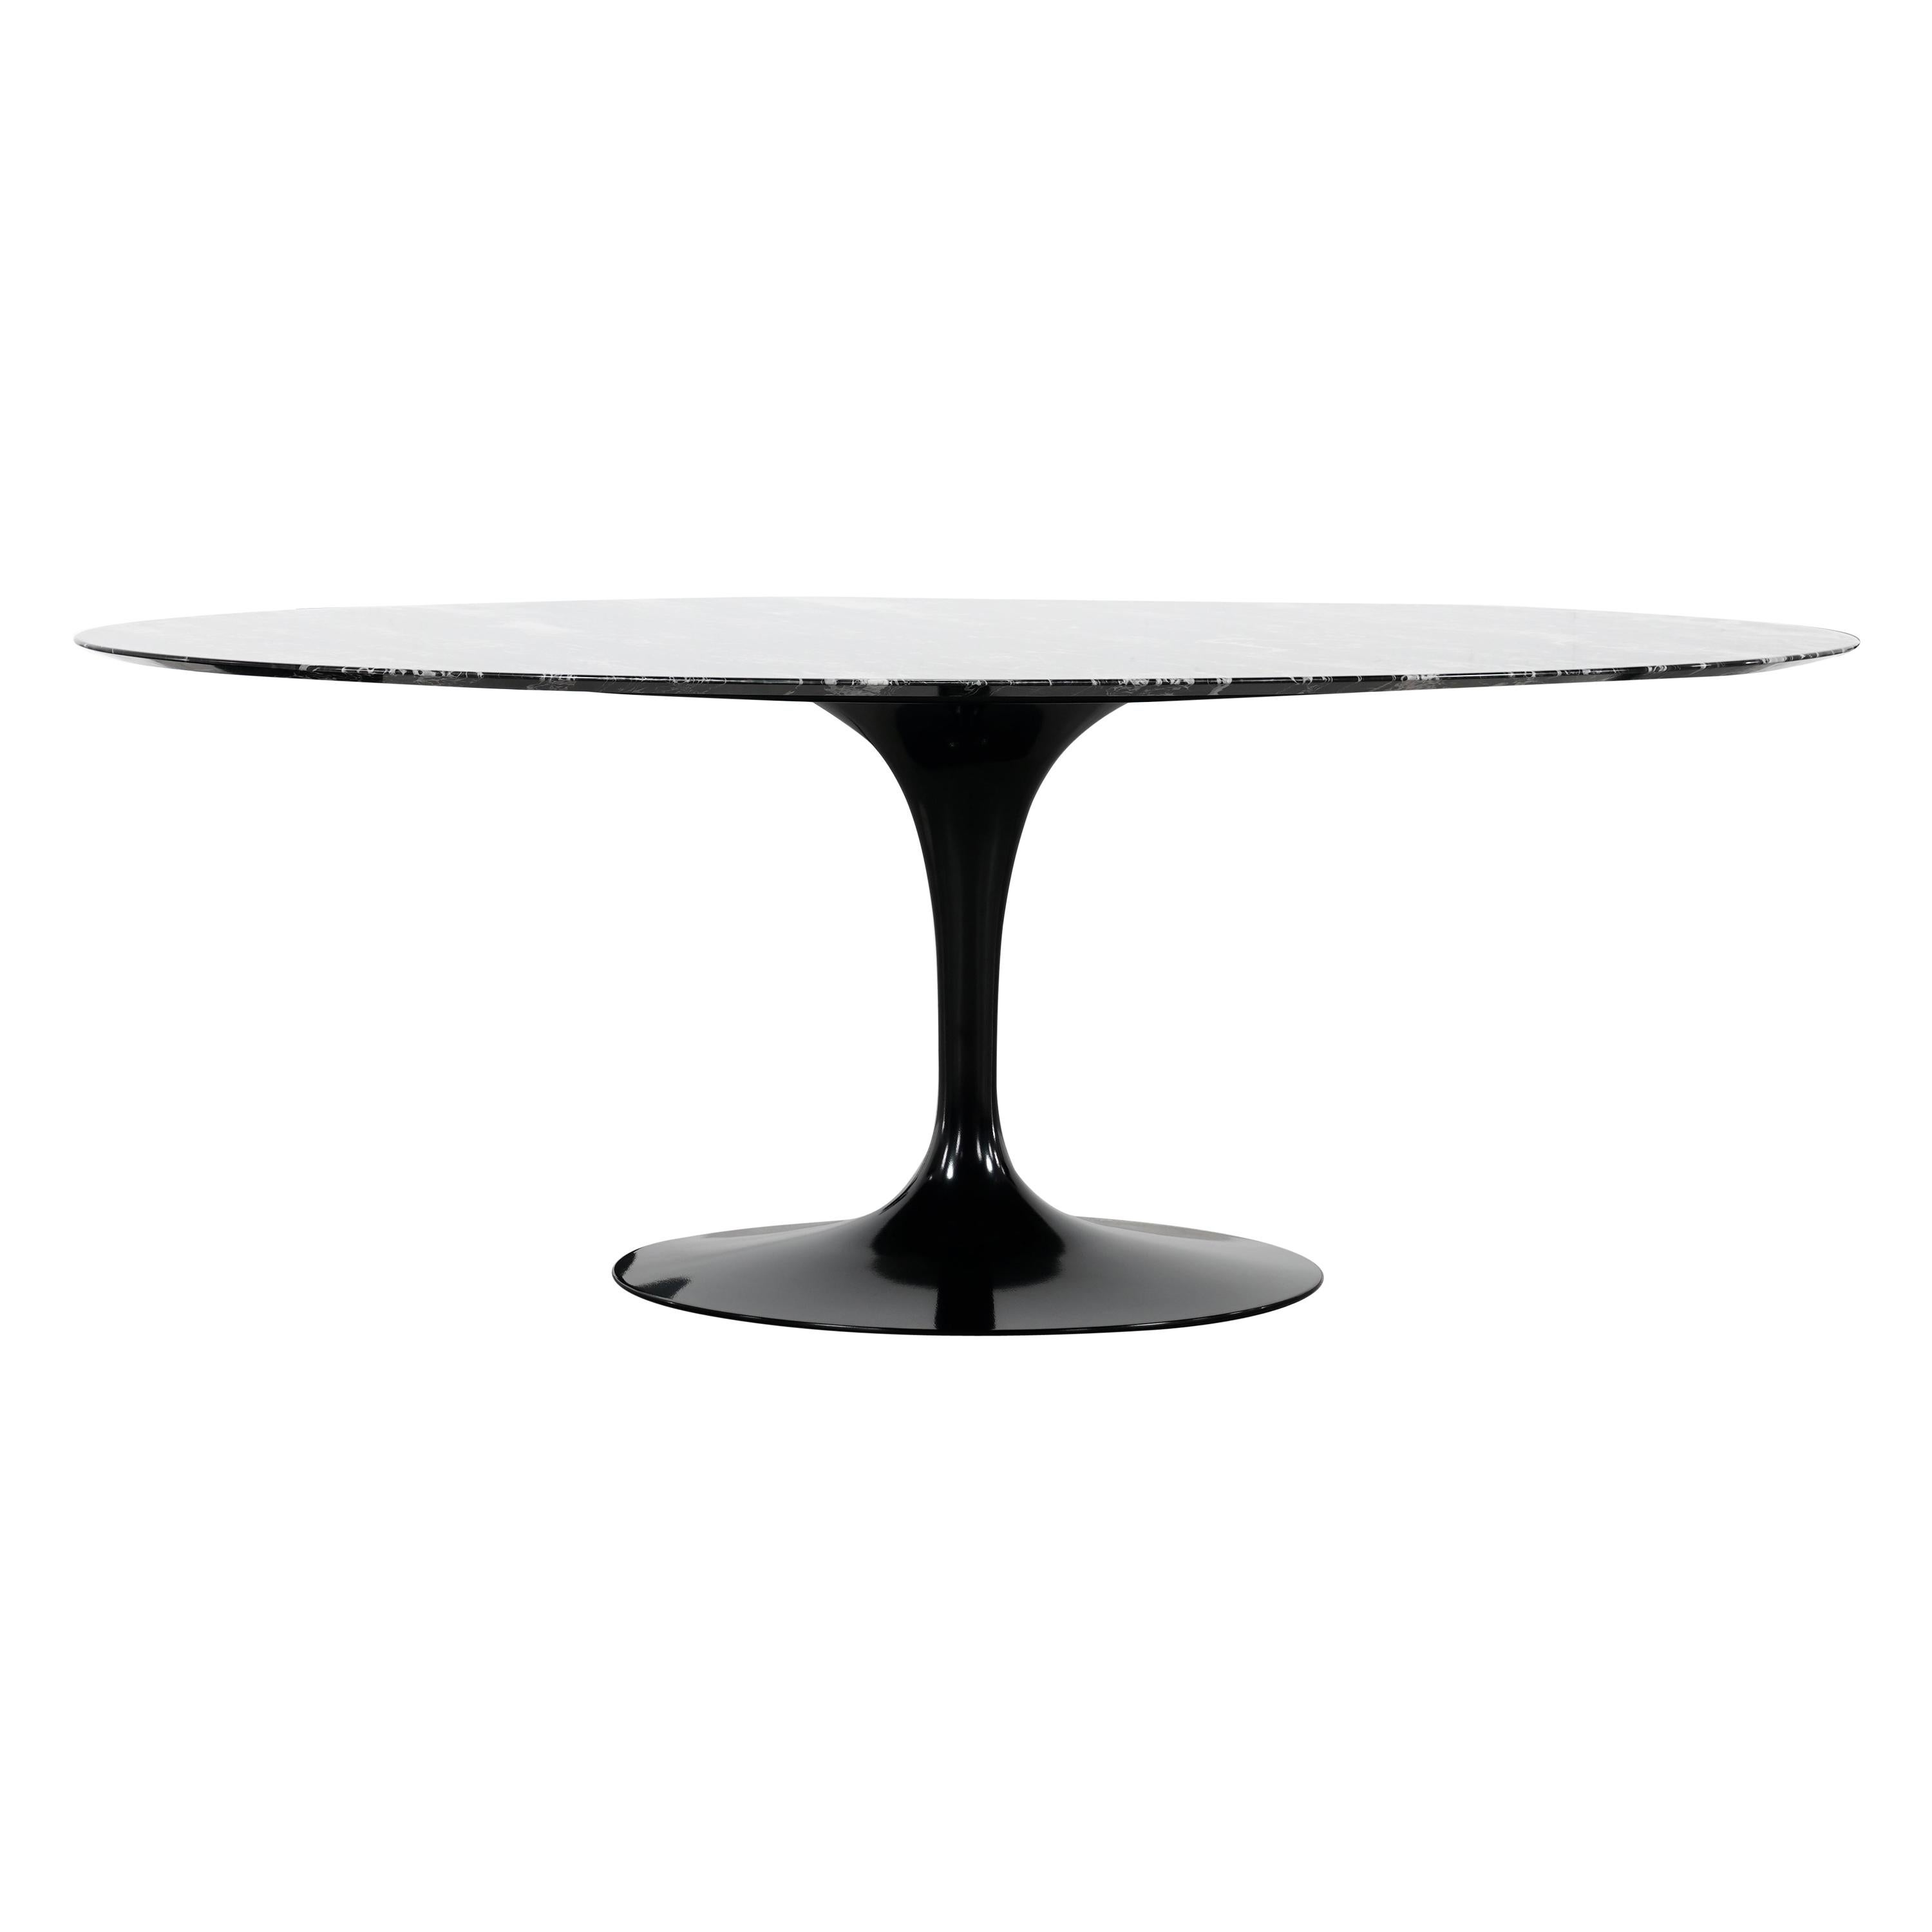 . Antique and Vintage Tables   74 159 For Sale at 1stdibs